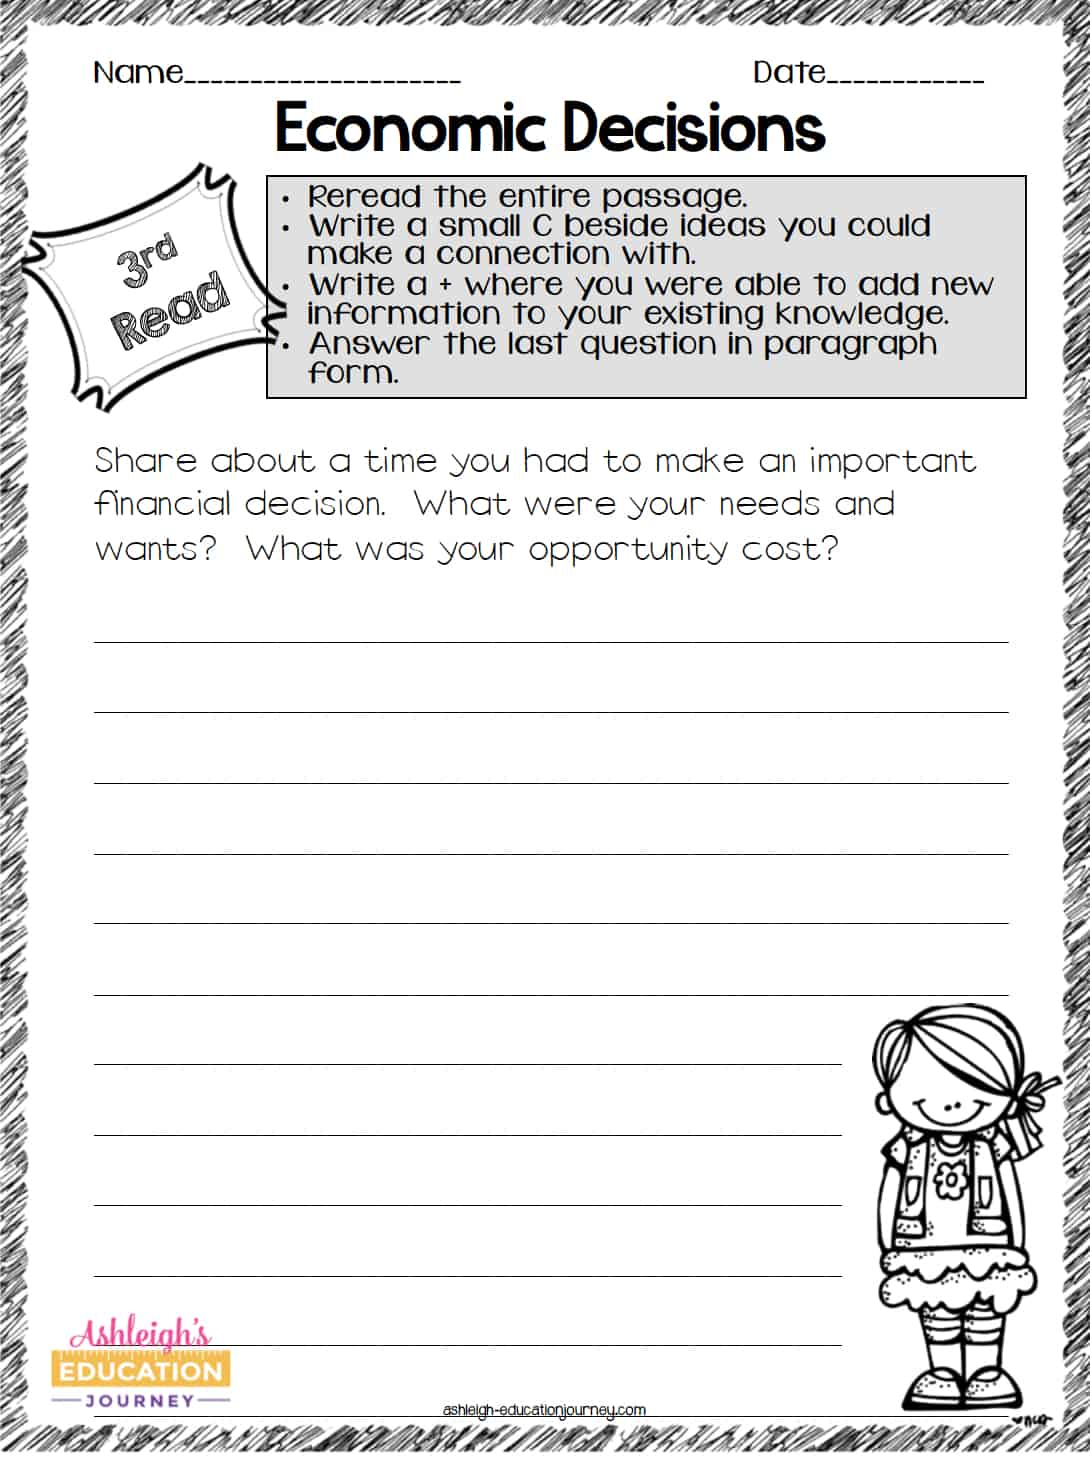 hight resolution of Economics Lessons-Say Goodbye to Boring - Ashleigh's Education Journey